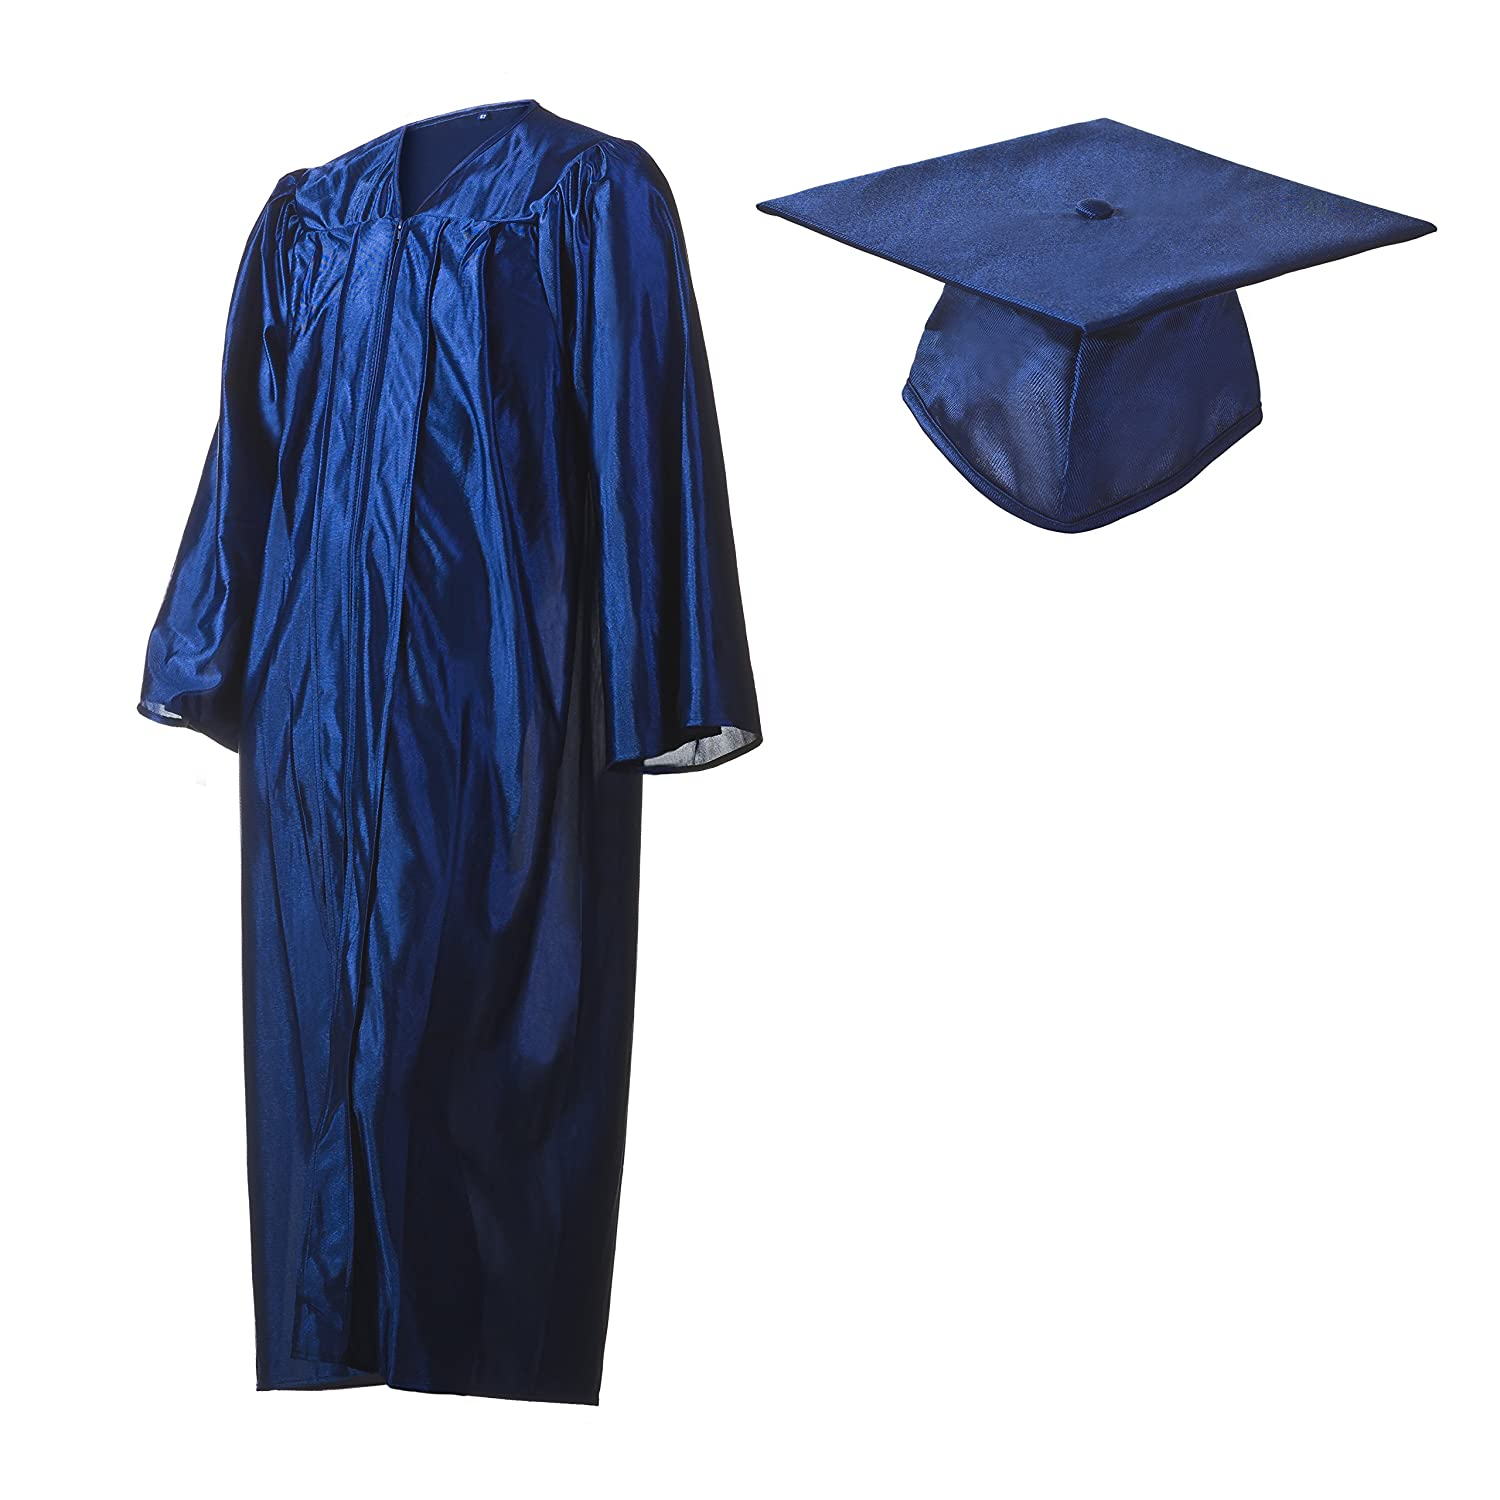 Blue cap and gown